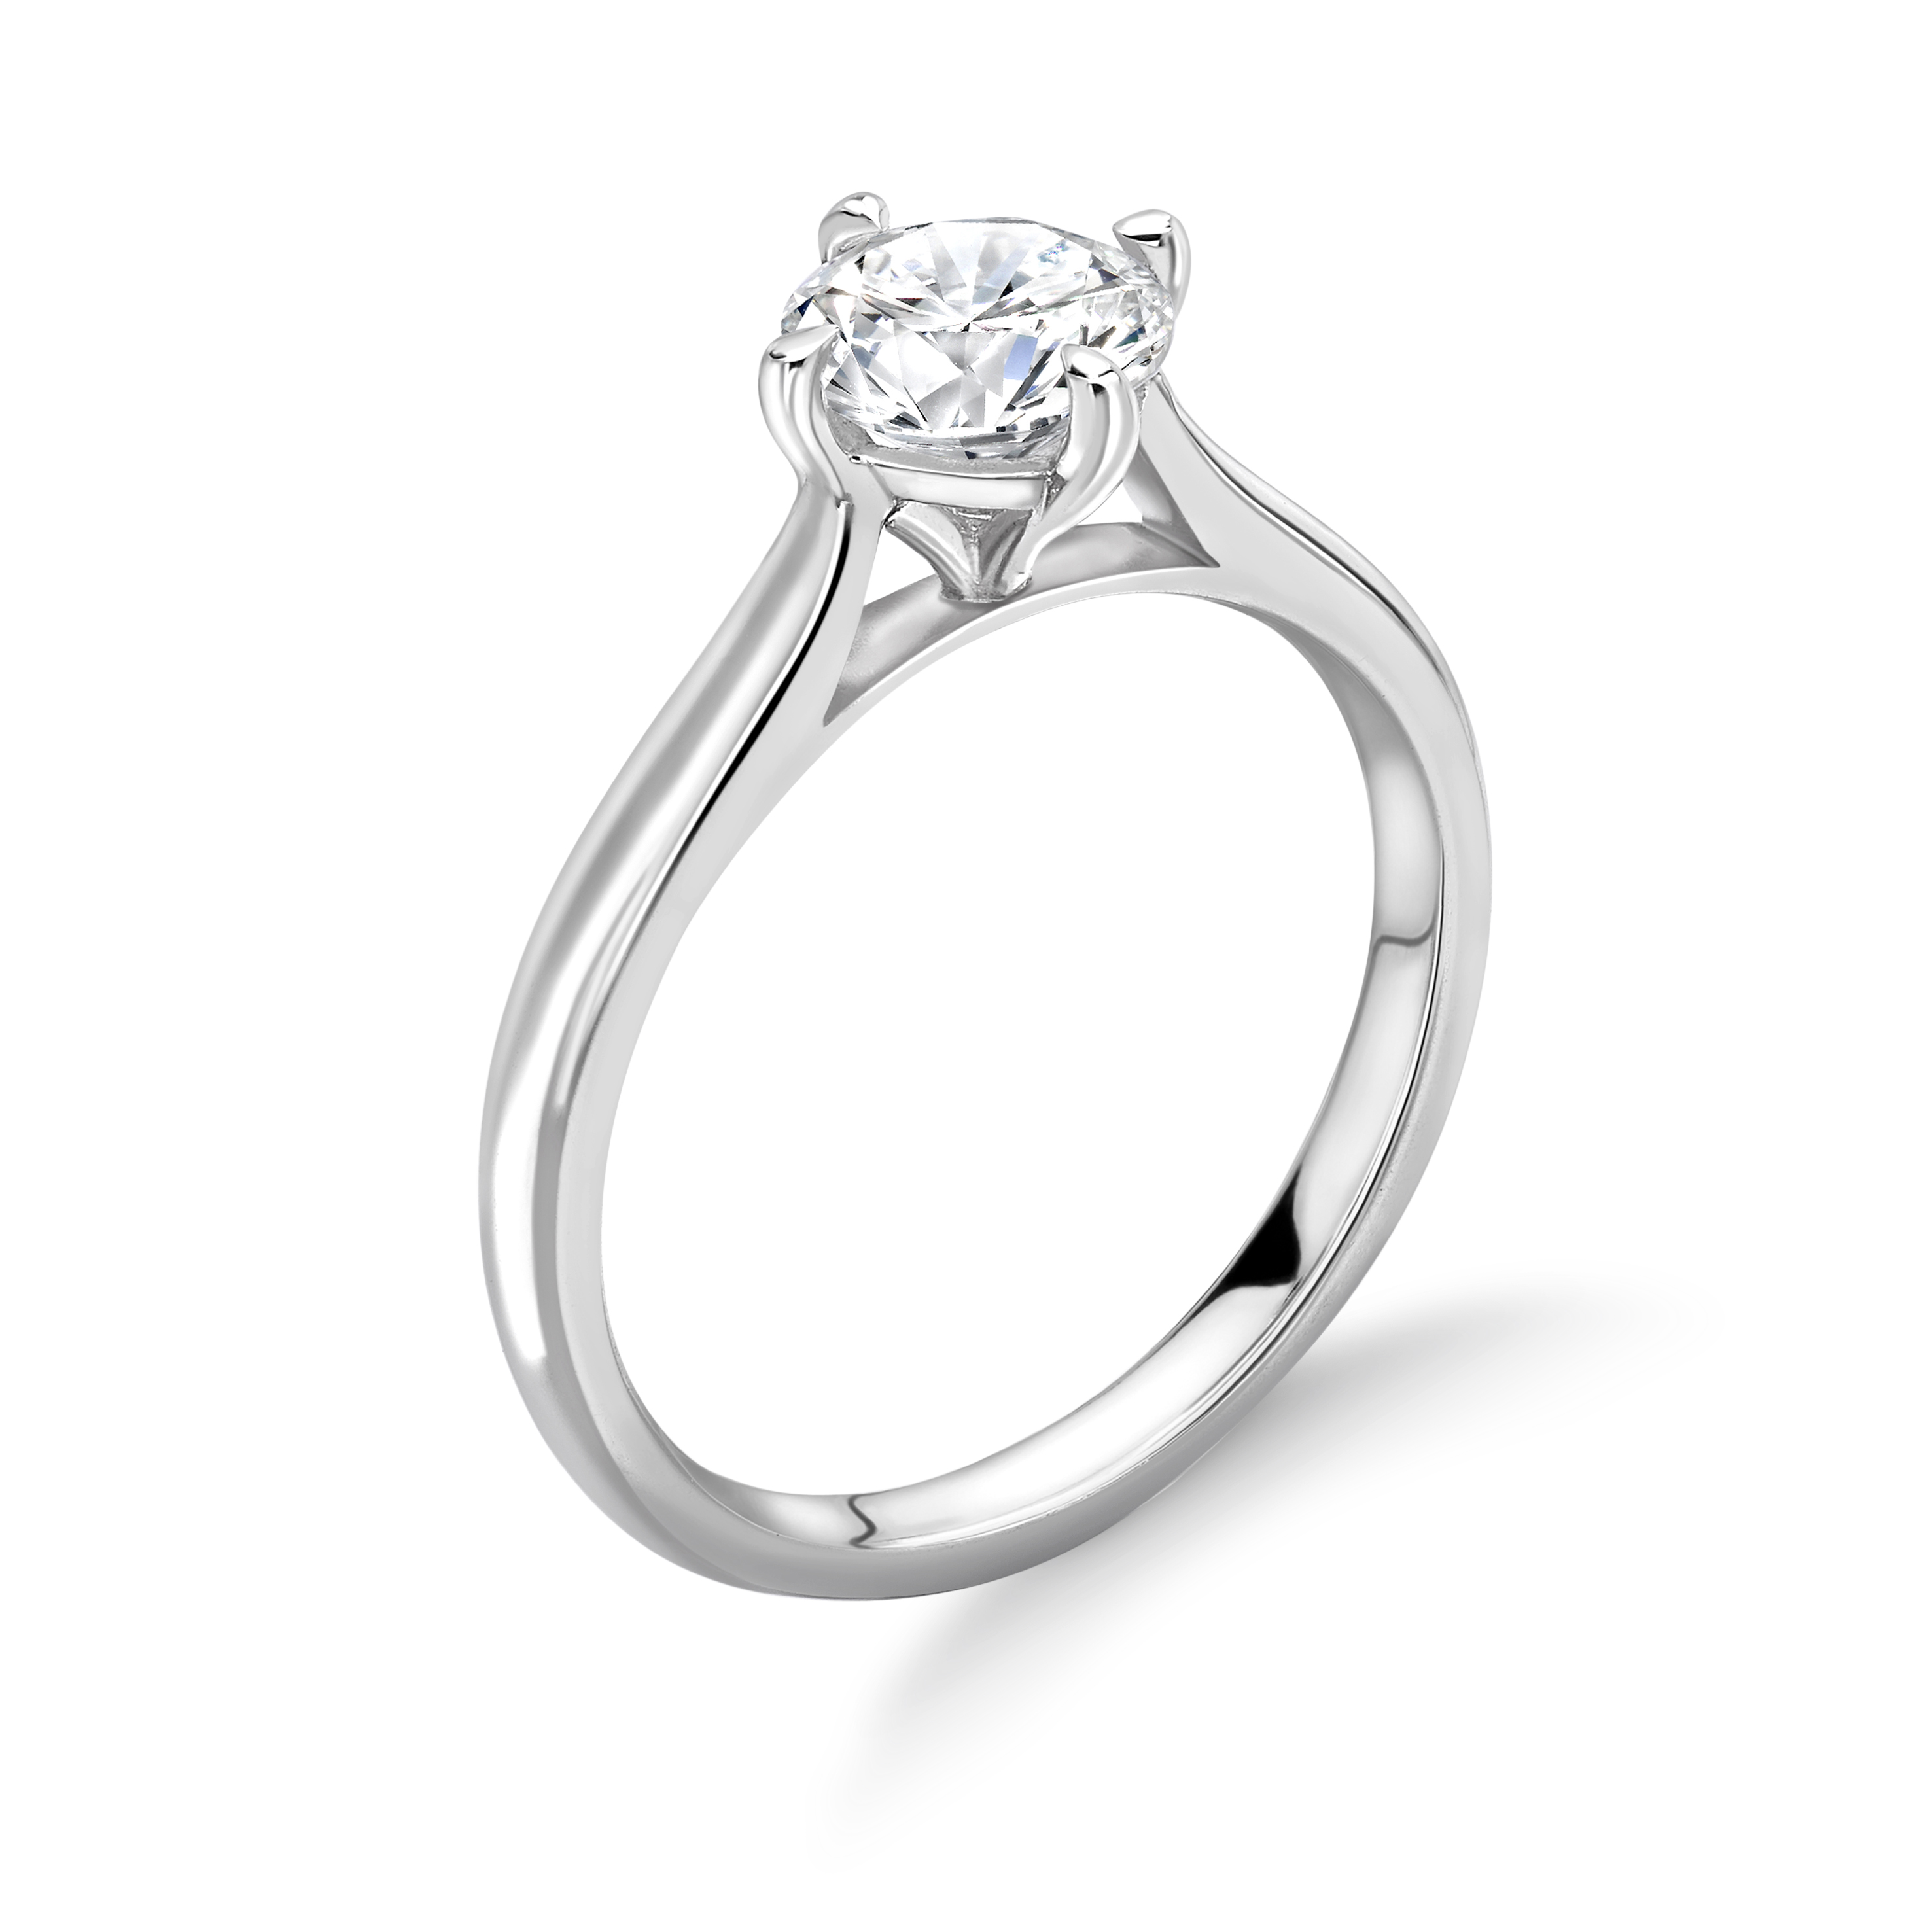 N-W-E-S Style Setting Solitaire Lab Grown Diamond Engagement Ring